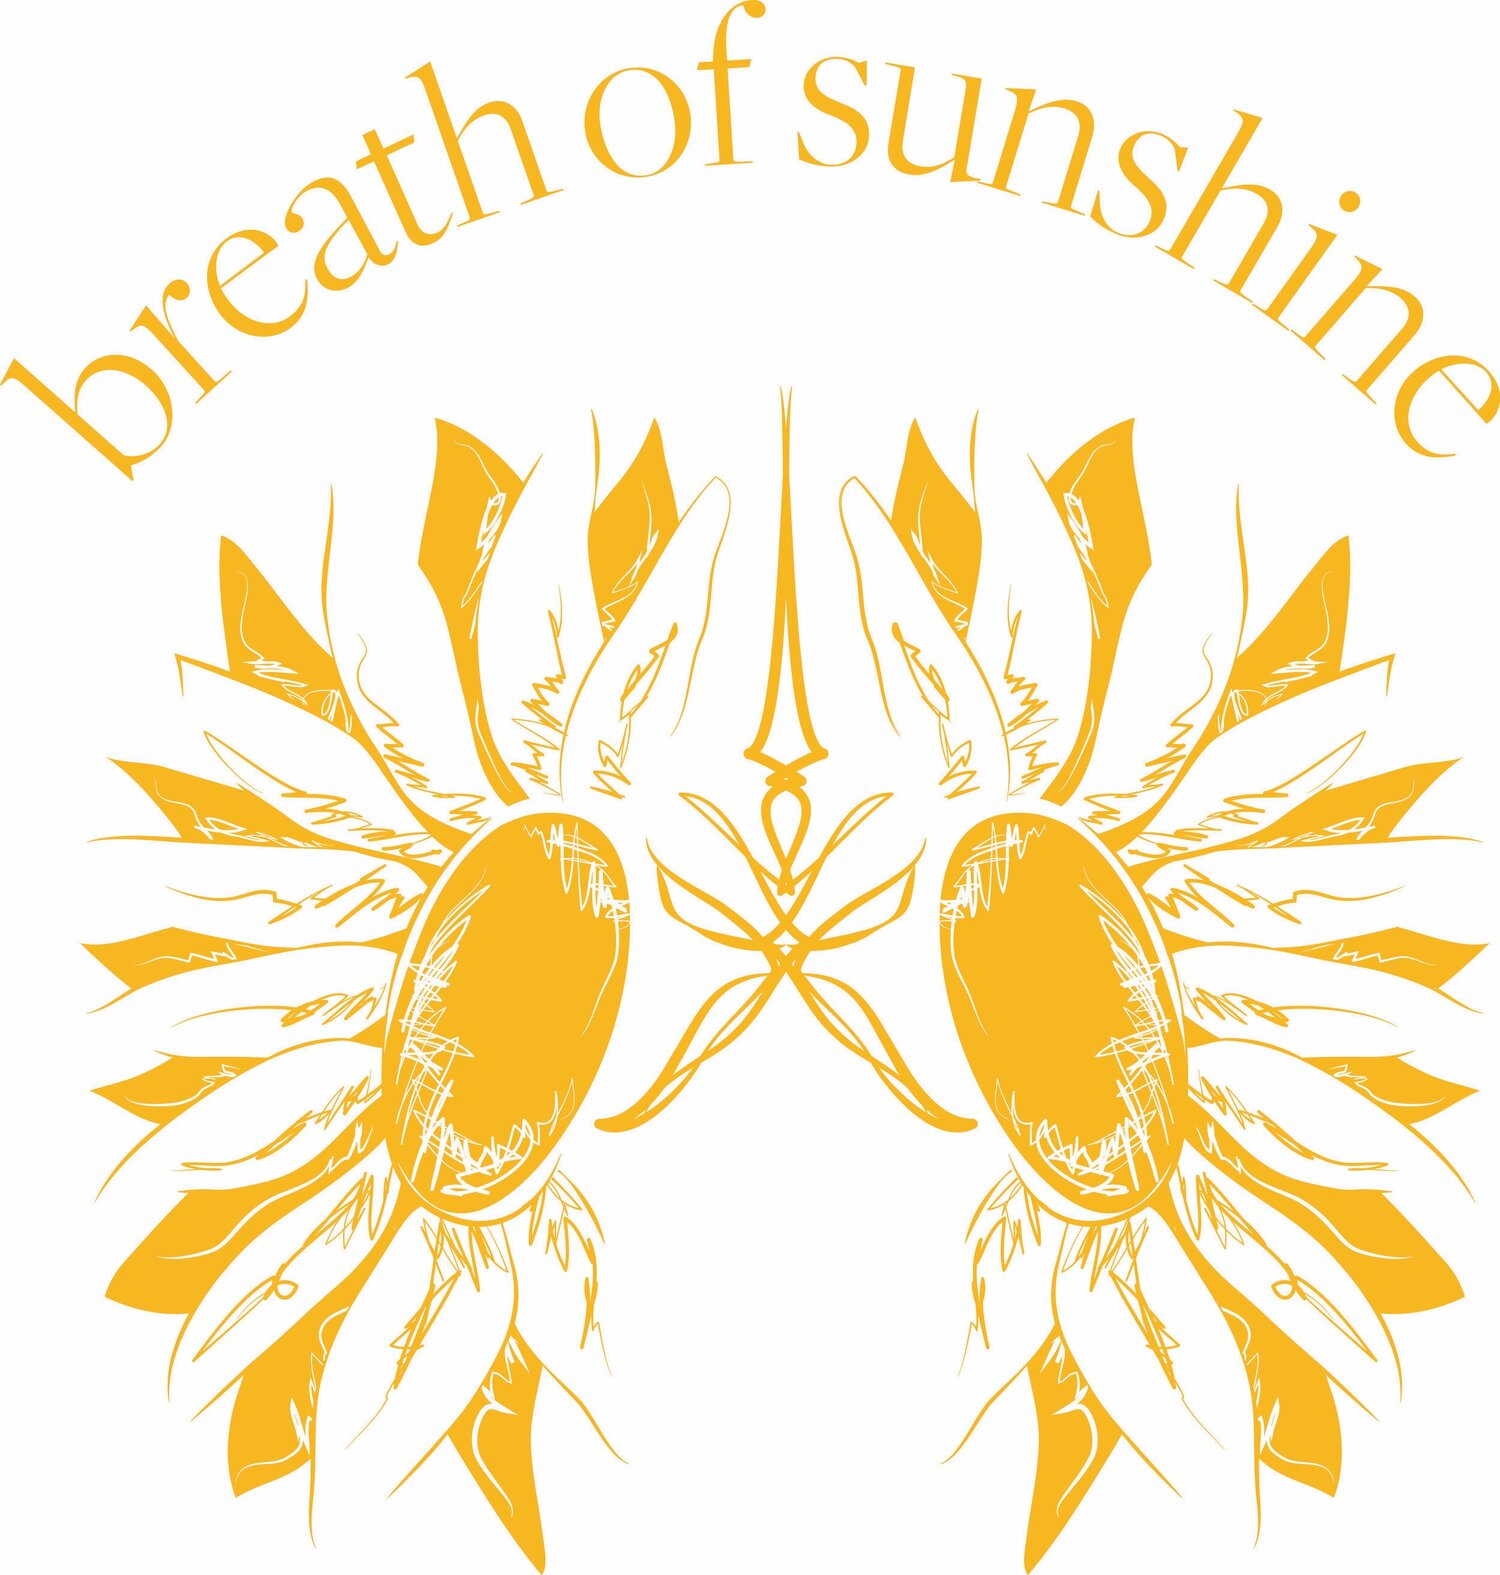 Breath of Sunshine